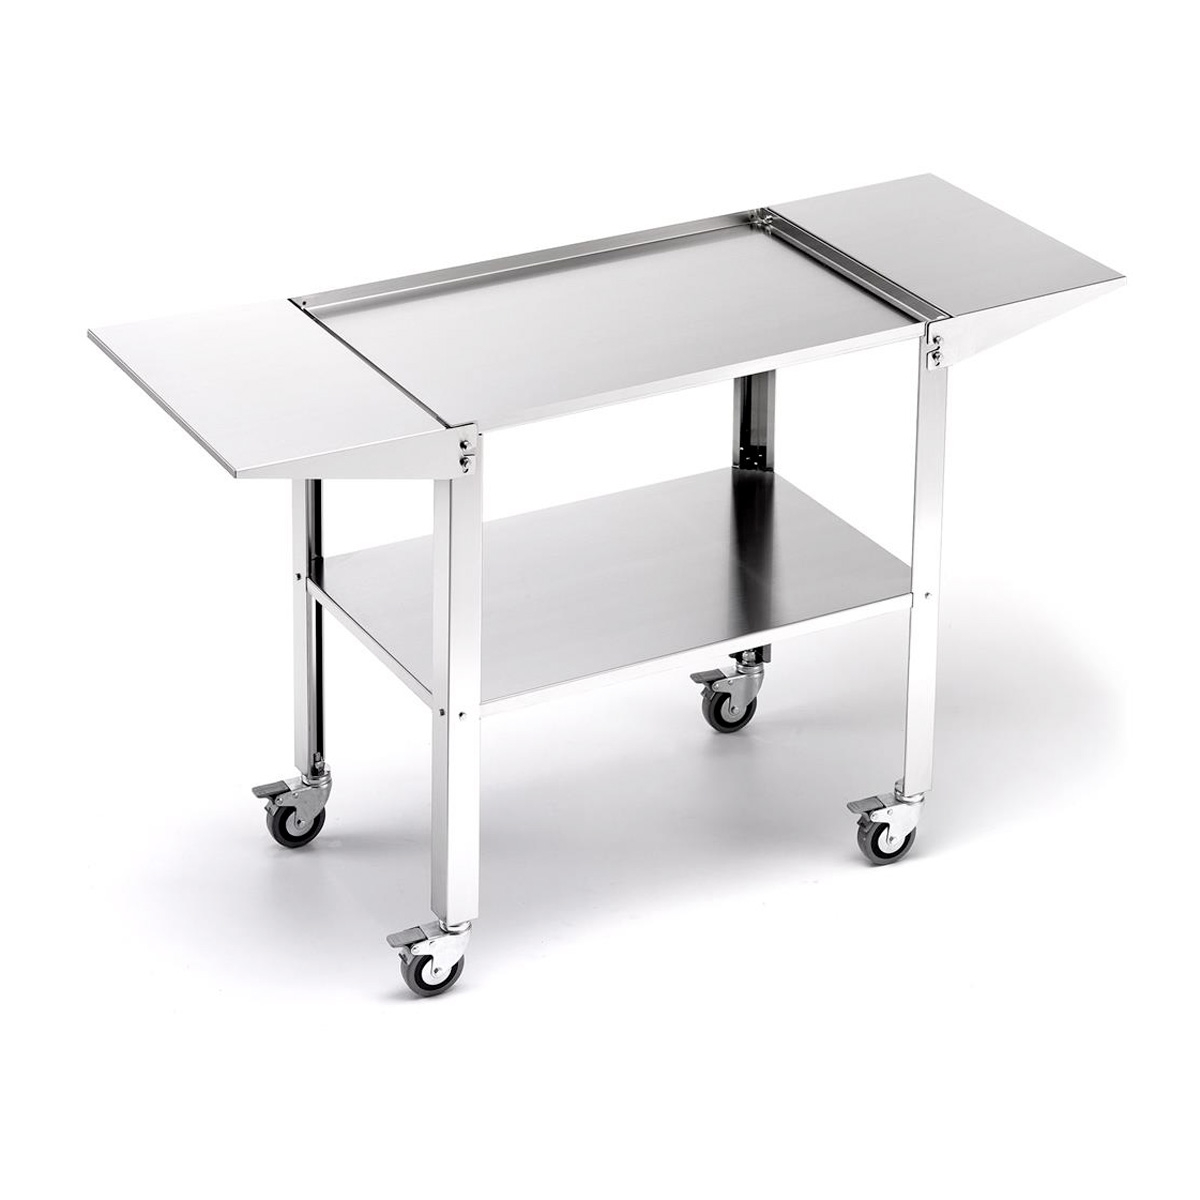 Chariot pro inox grand Ompagrill 46130 pour planche